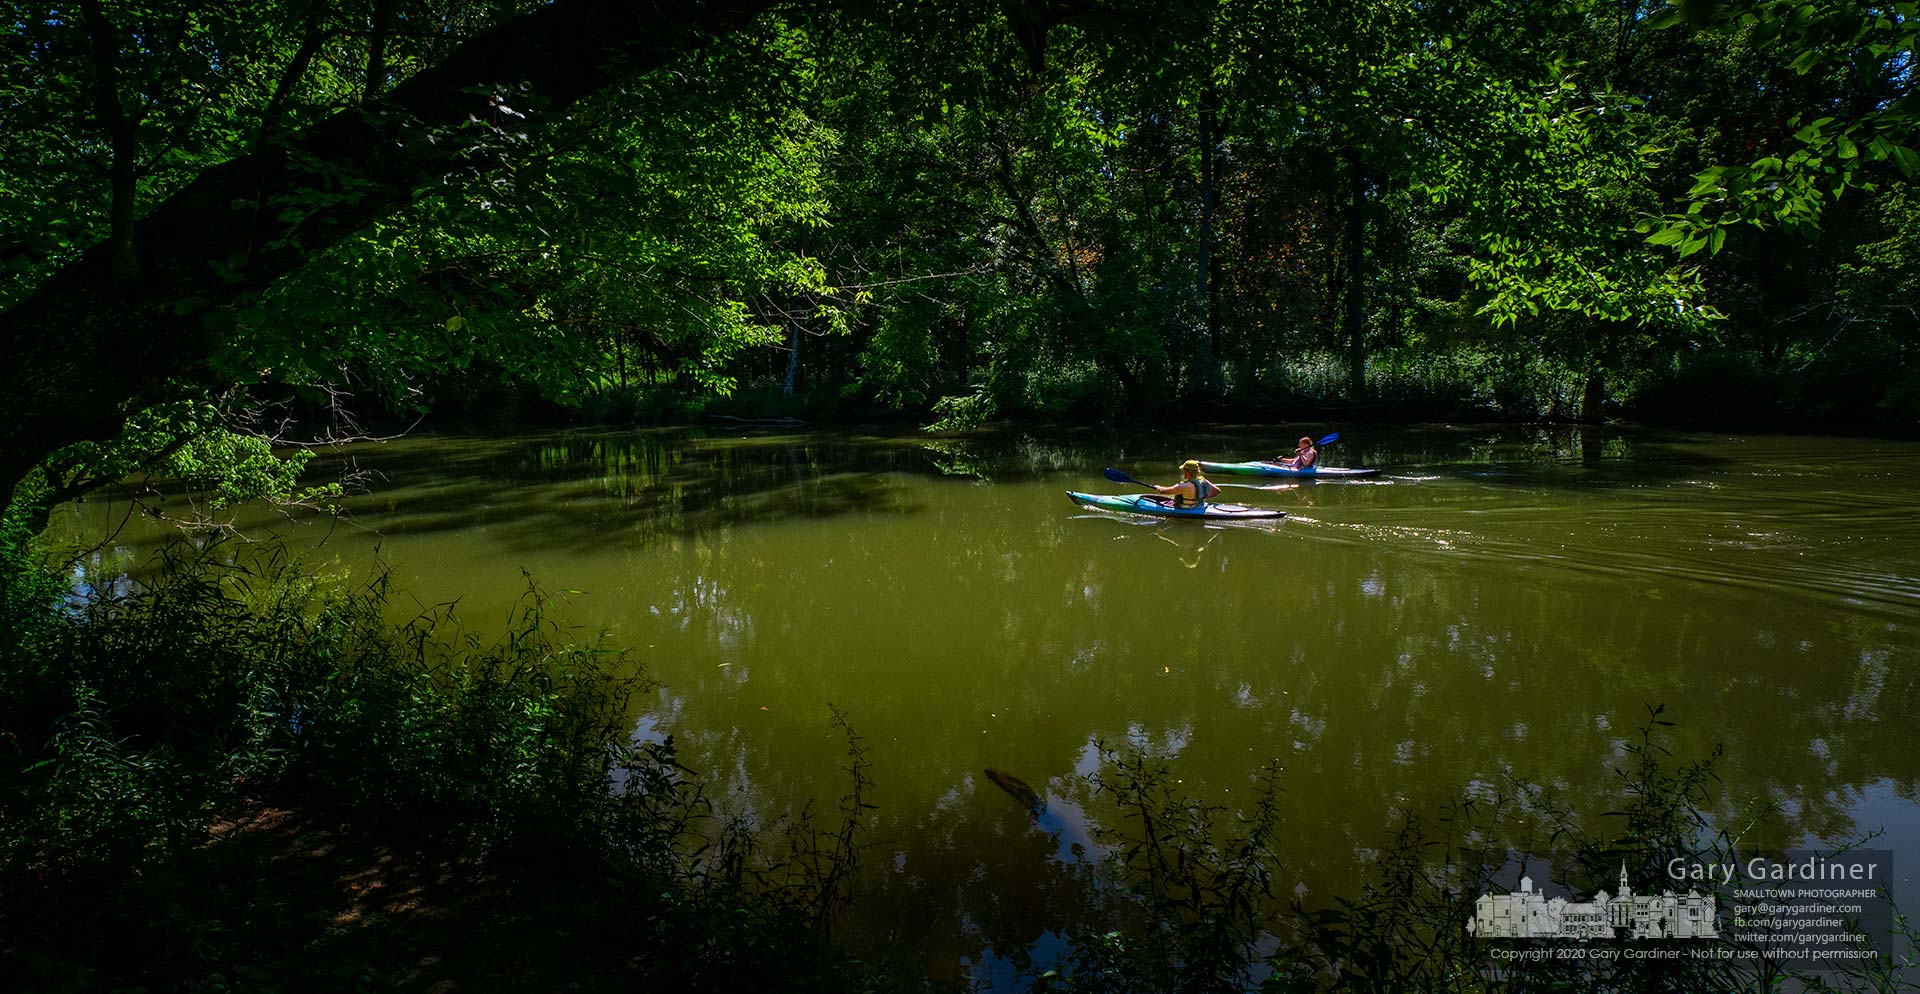 A couple begins their Sunday afternoon kayaking trek on the still waters of Alum Creek from the landing in Kilbourne. My Final Photo for Aug. 9, 2020.